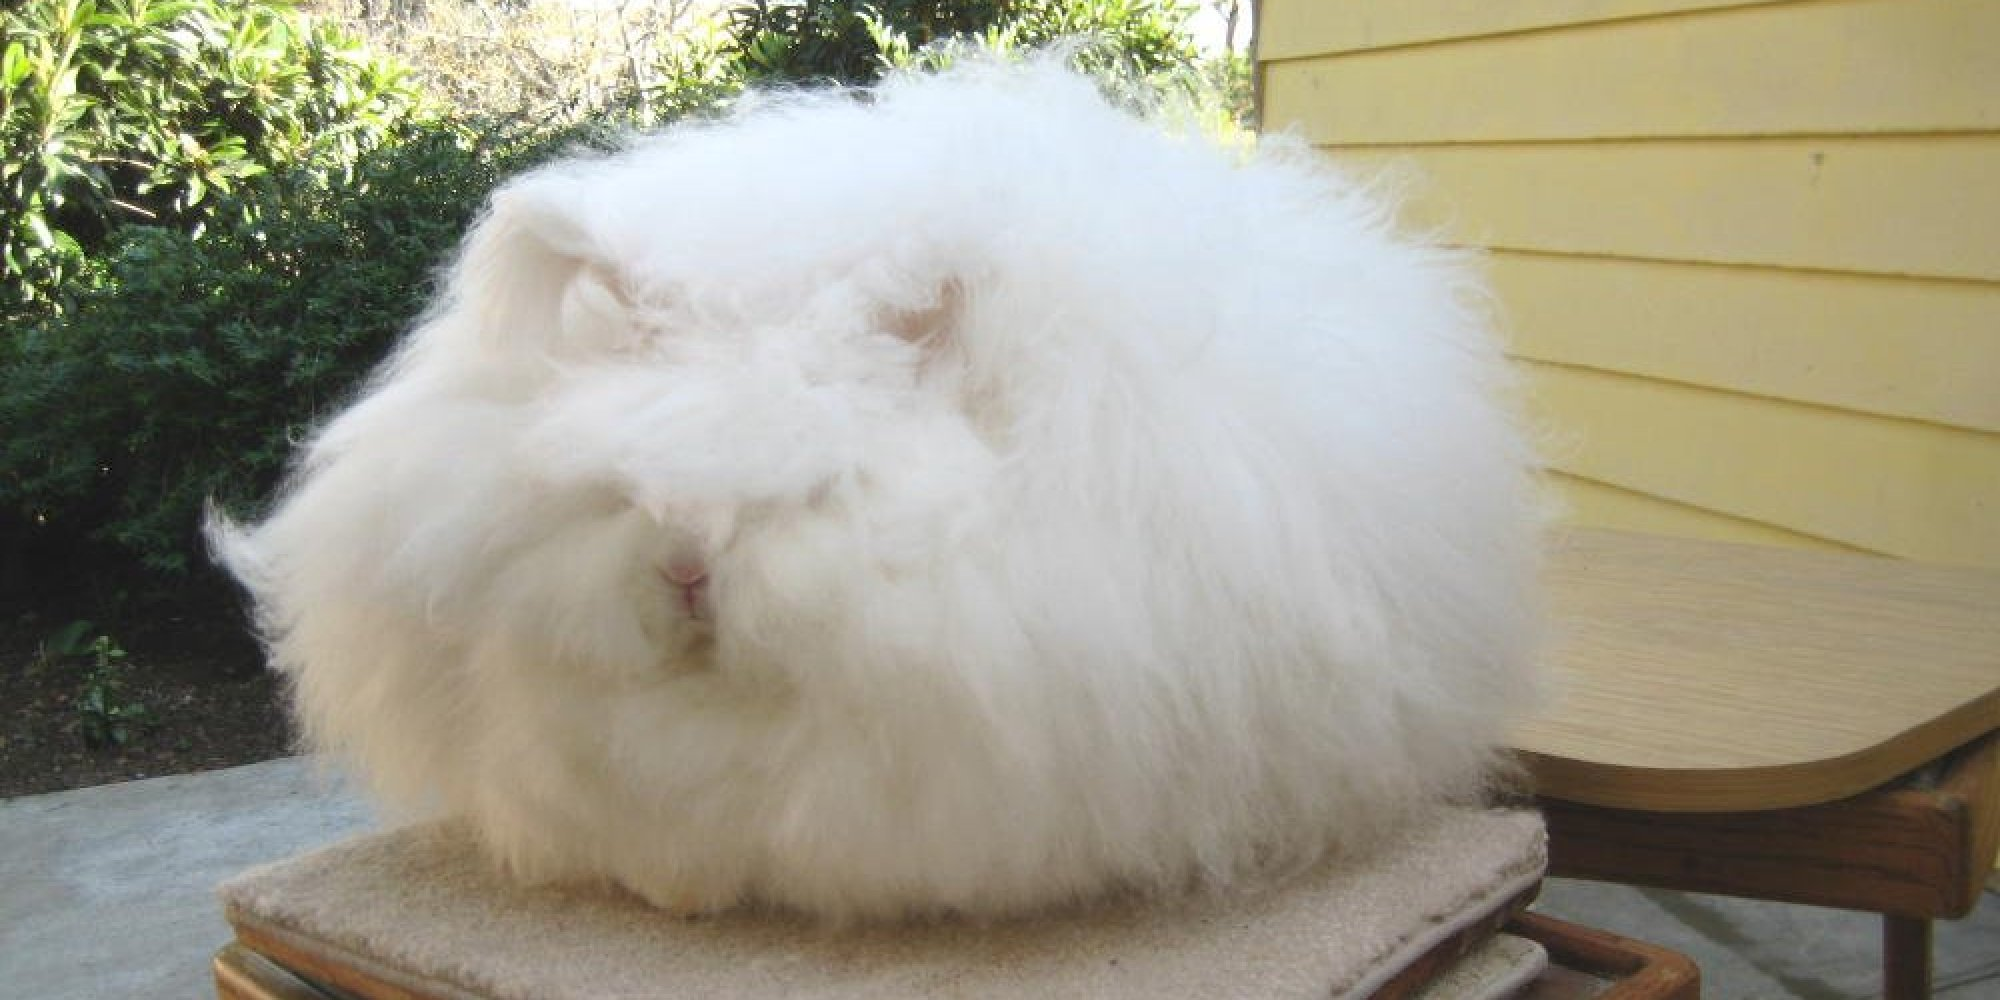 Underneath This Giant Ball Of Cotton Is A Rabbit Photos